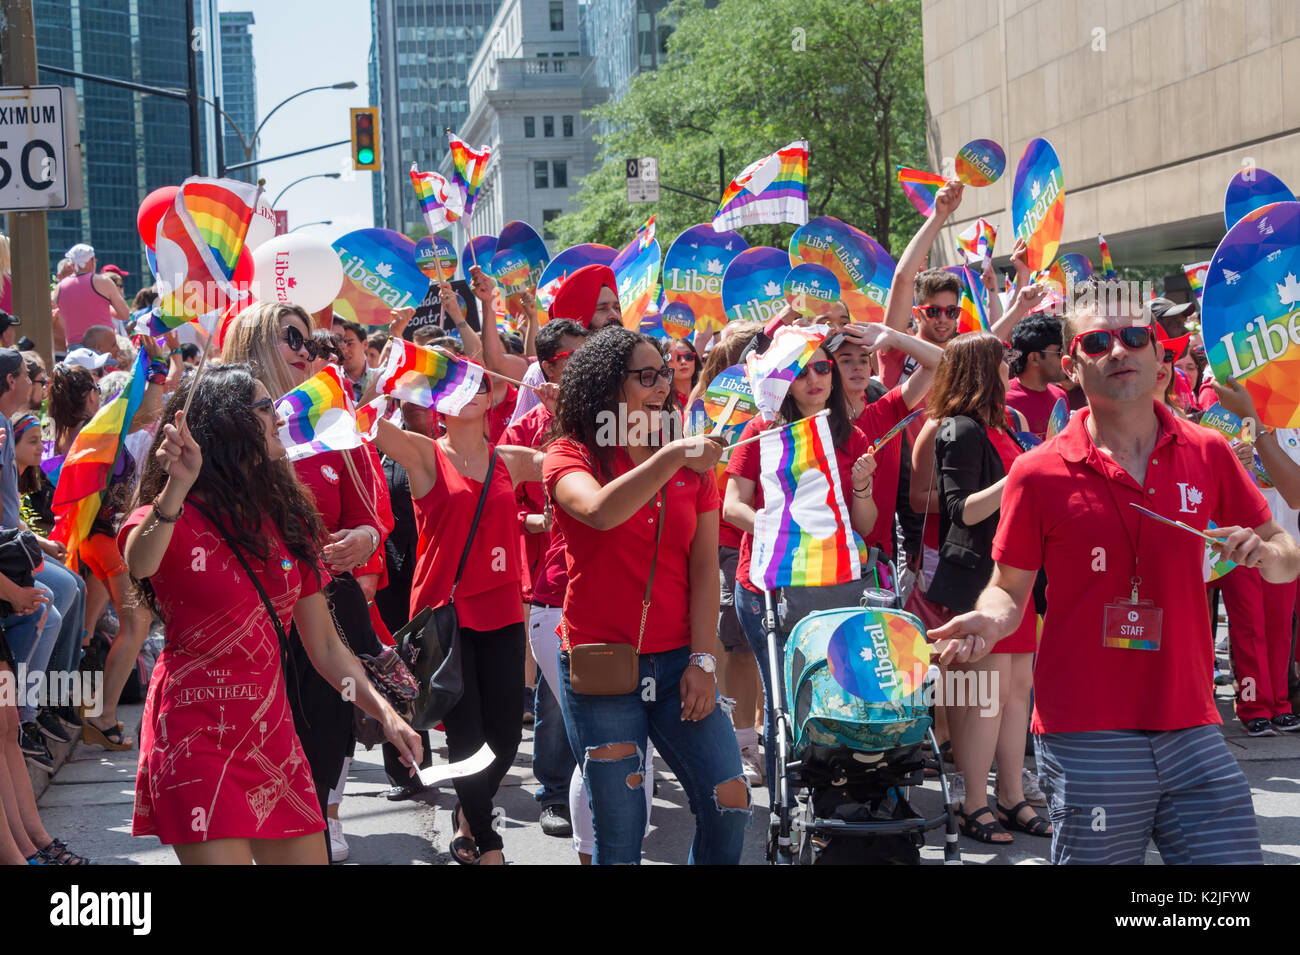 Montreal, Canada - 20 August 2017: Members of Canadian Liberal Party take part in Montreal Gay Pride Parade - Stock Image